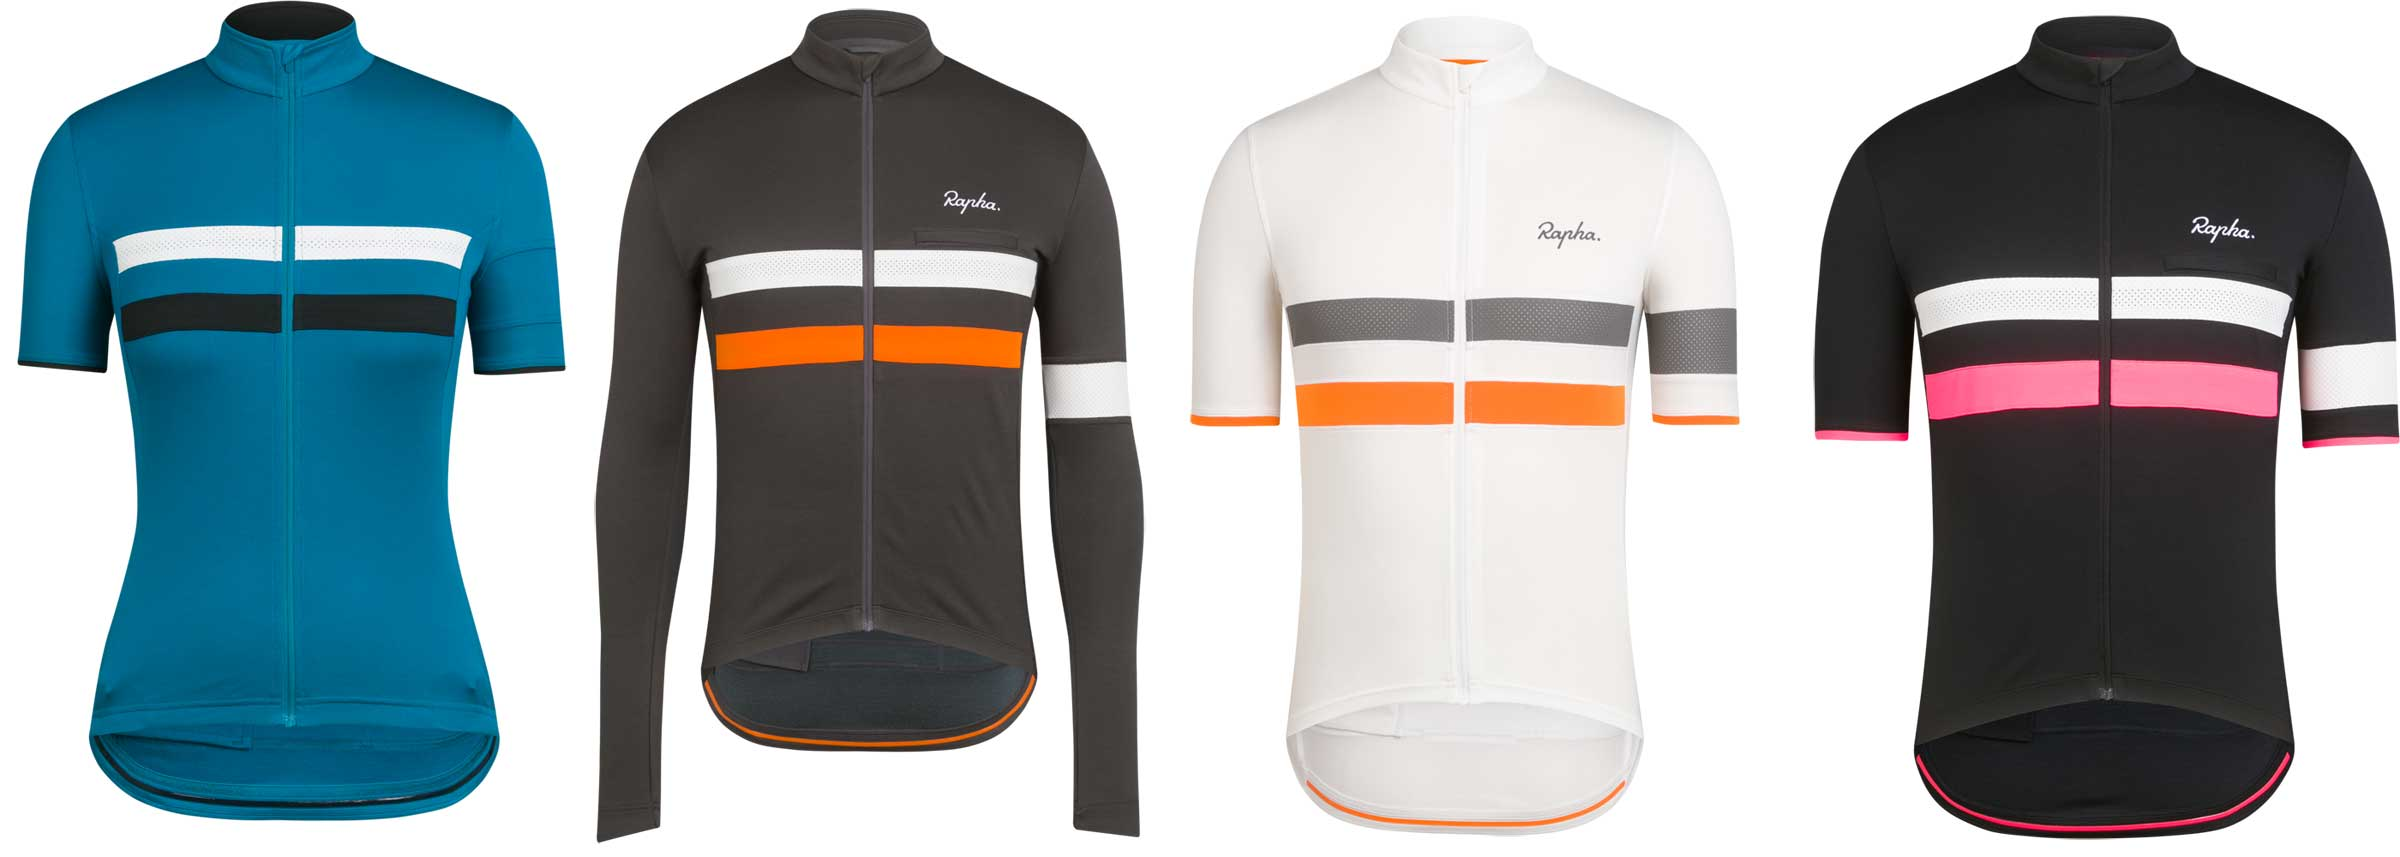 Rapha Explore rides off the road as Brevet offshoot d6dff0ceb